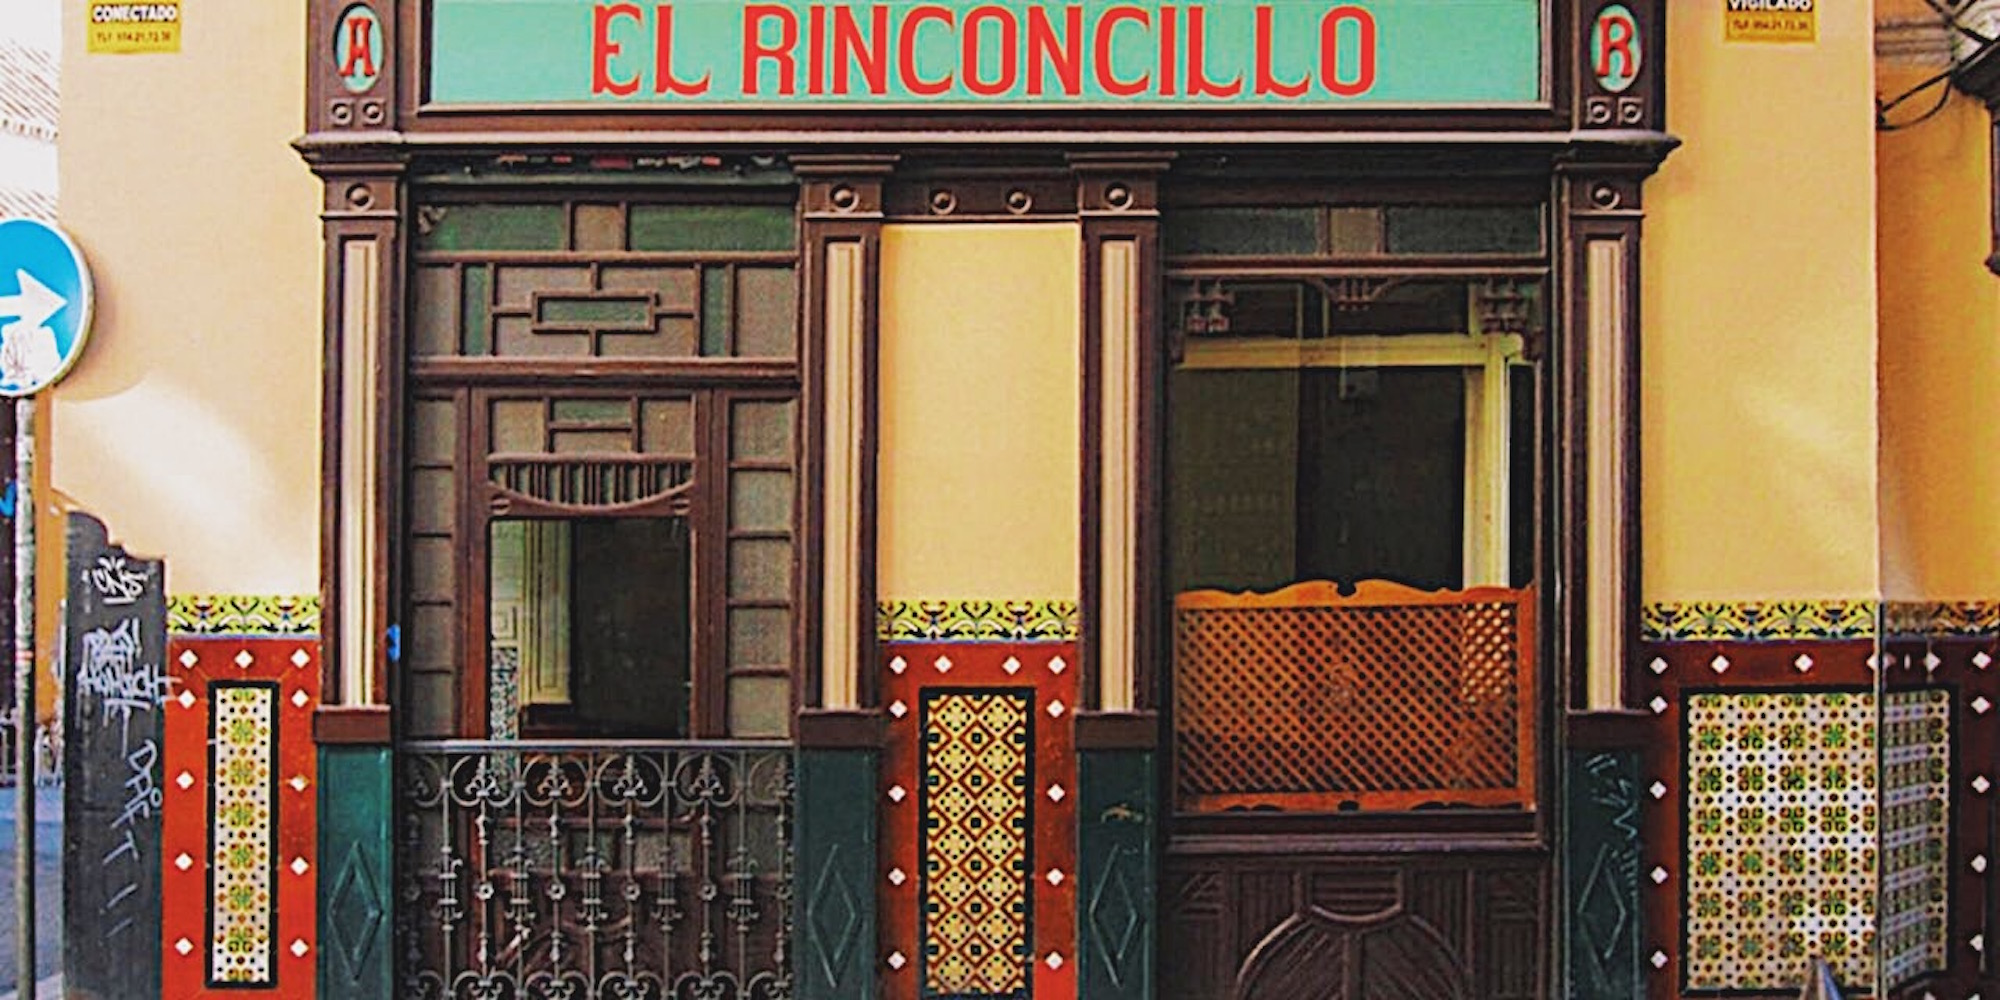 redhead-round-the-world-blogger-food-foodie-foodblog-spain-el-rinconcillo-front.JPG